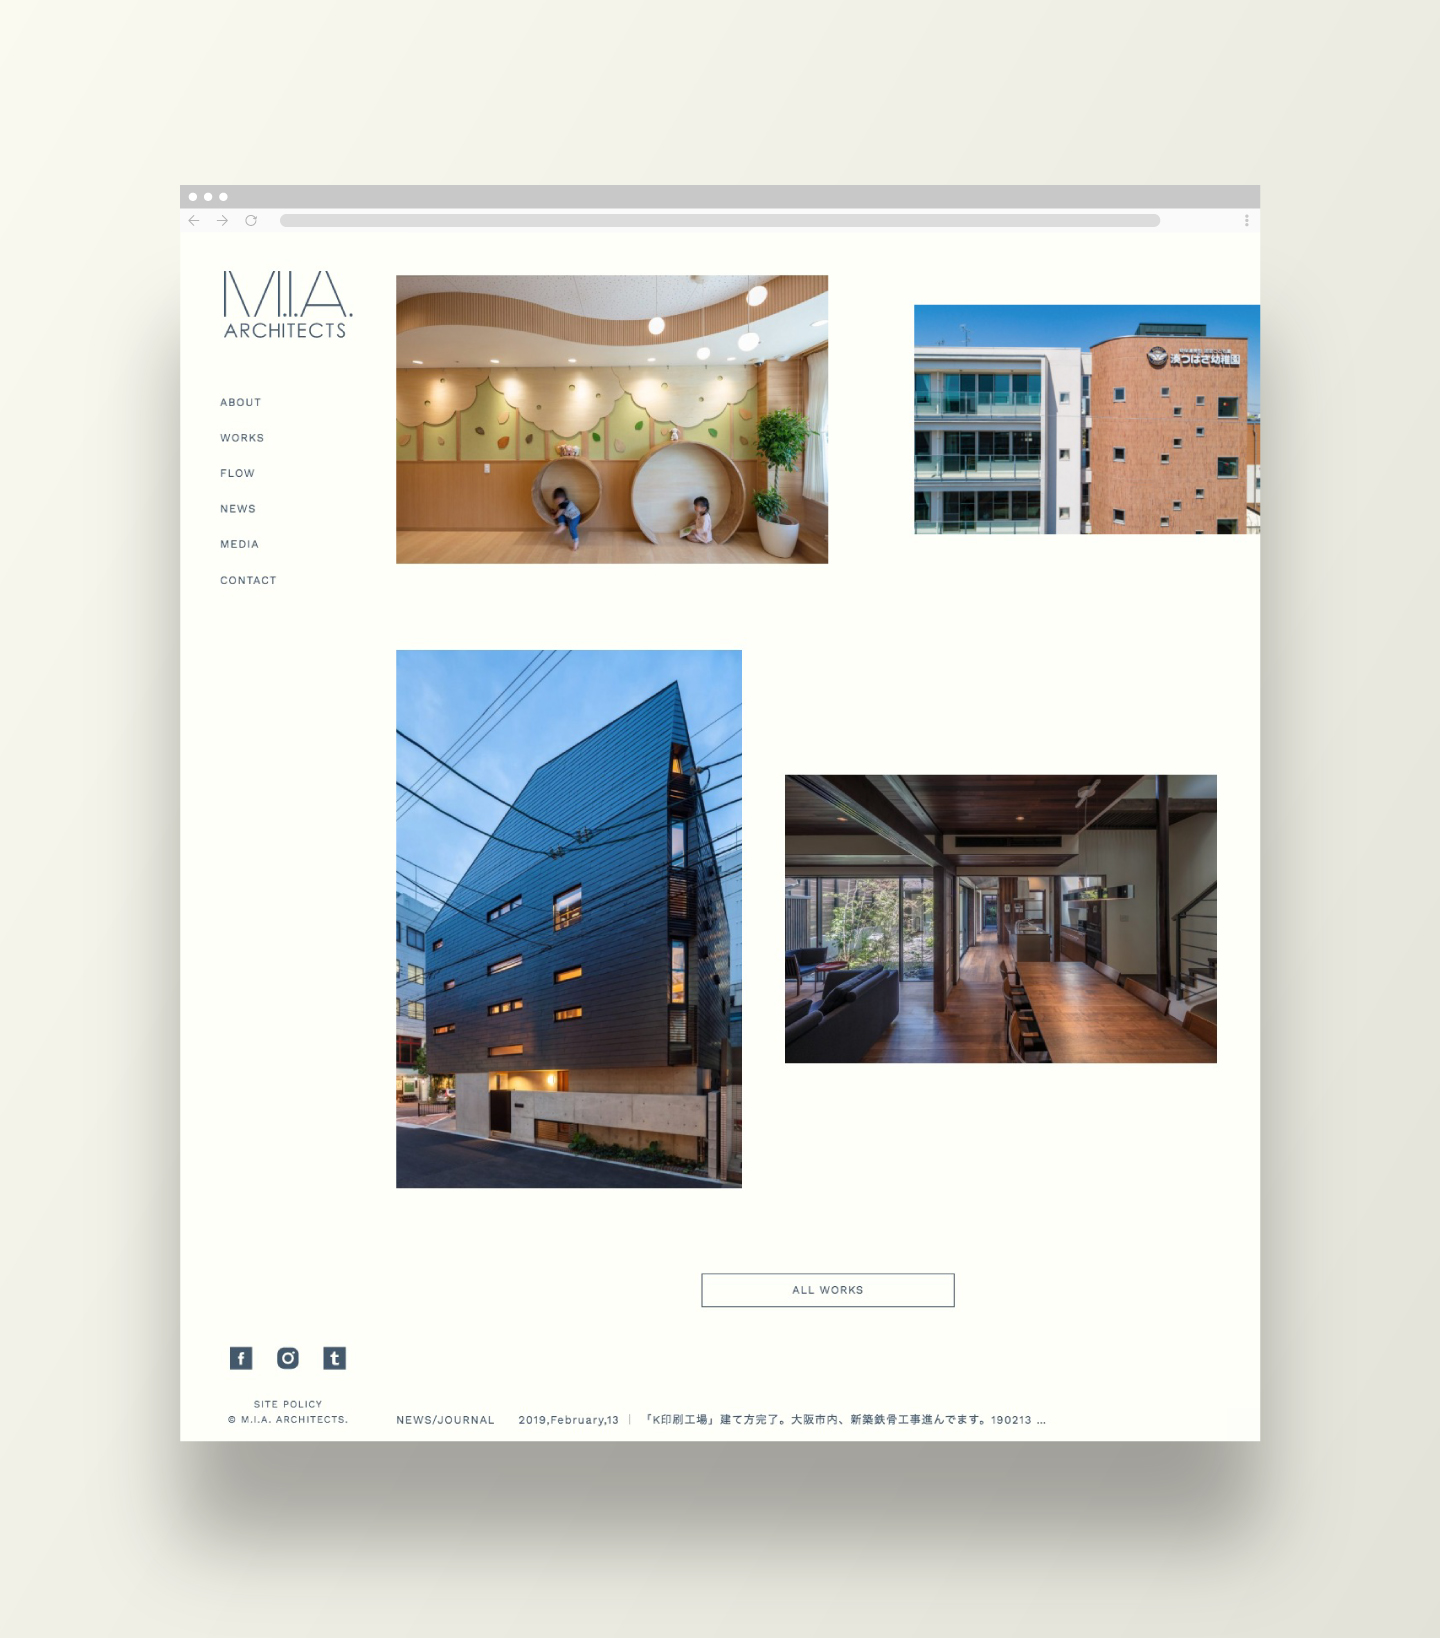 M.I.A. ARCHITECTS|Web Design